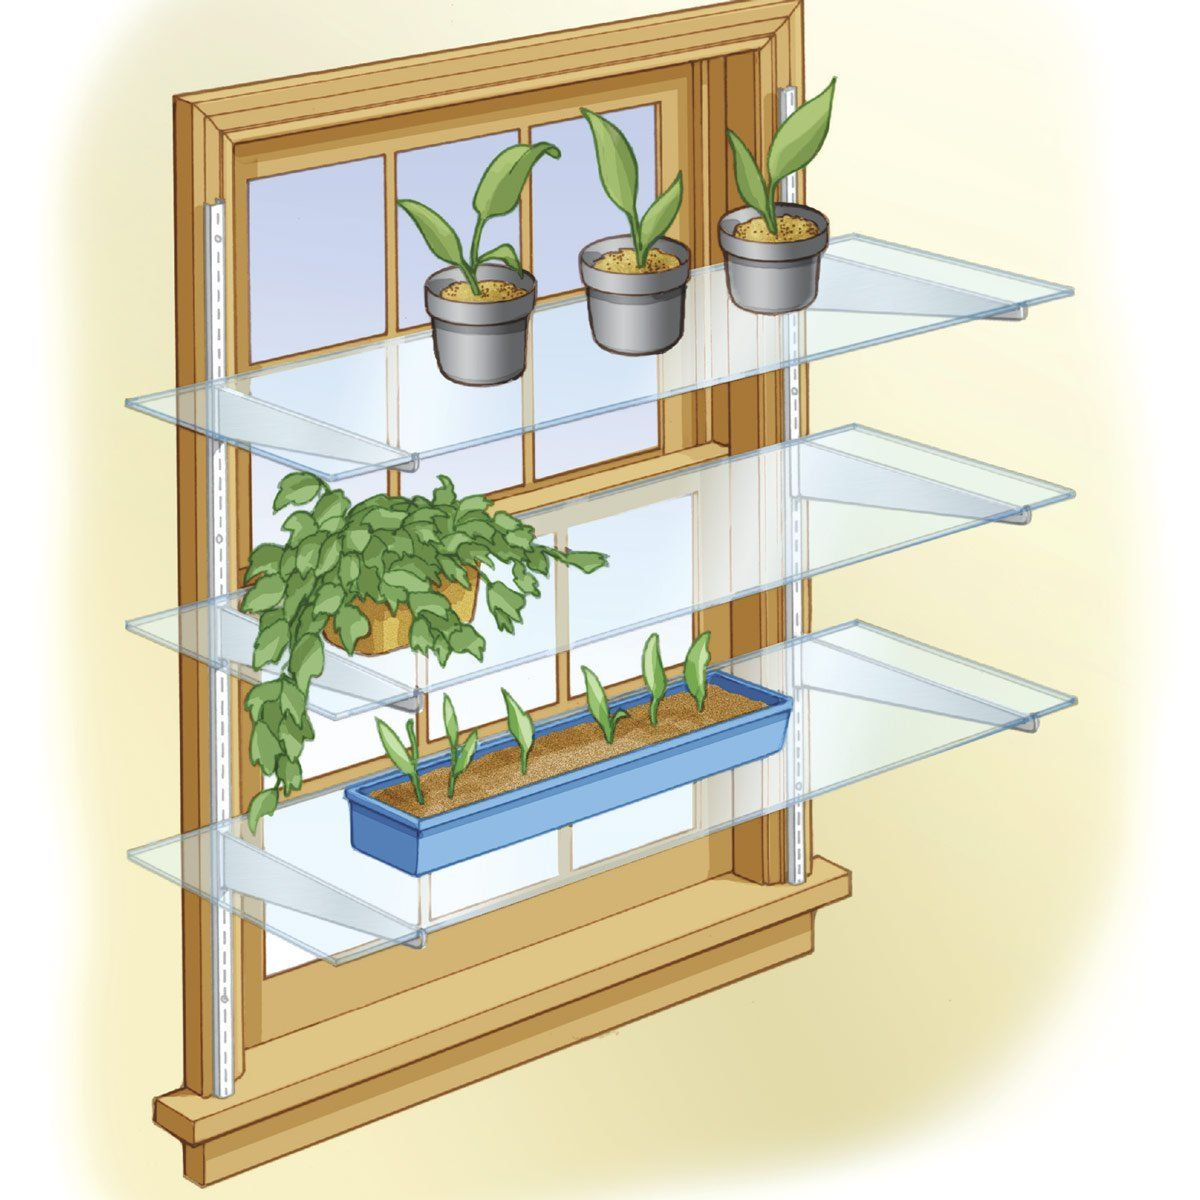 Kitchen Window Plant Shelf: Turn A Window Into A Mini Greenhouse